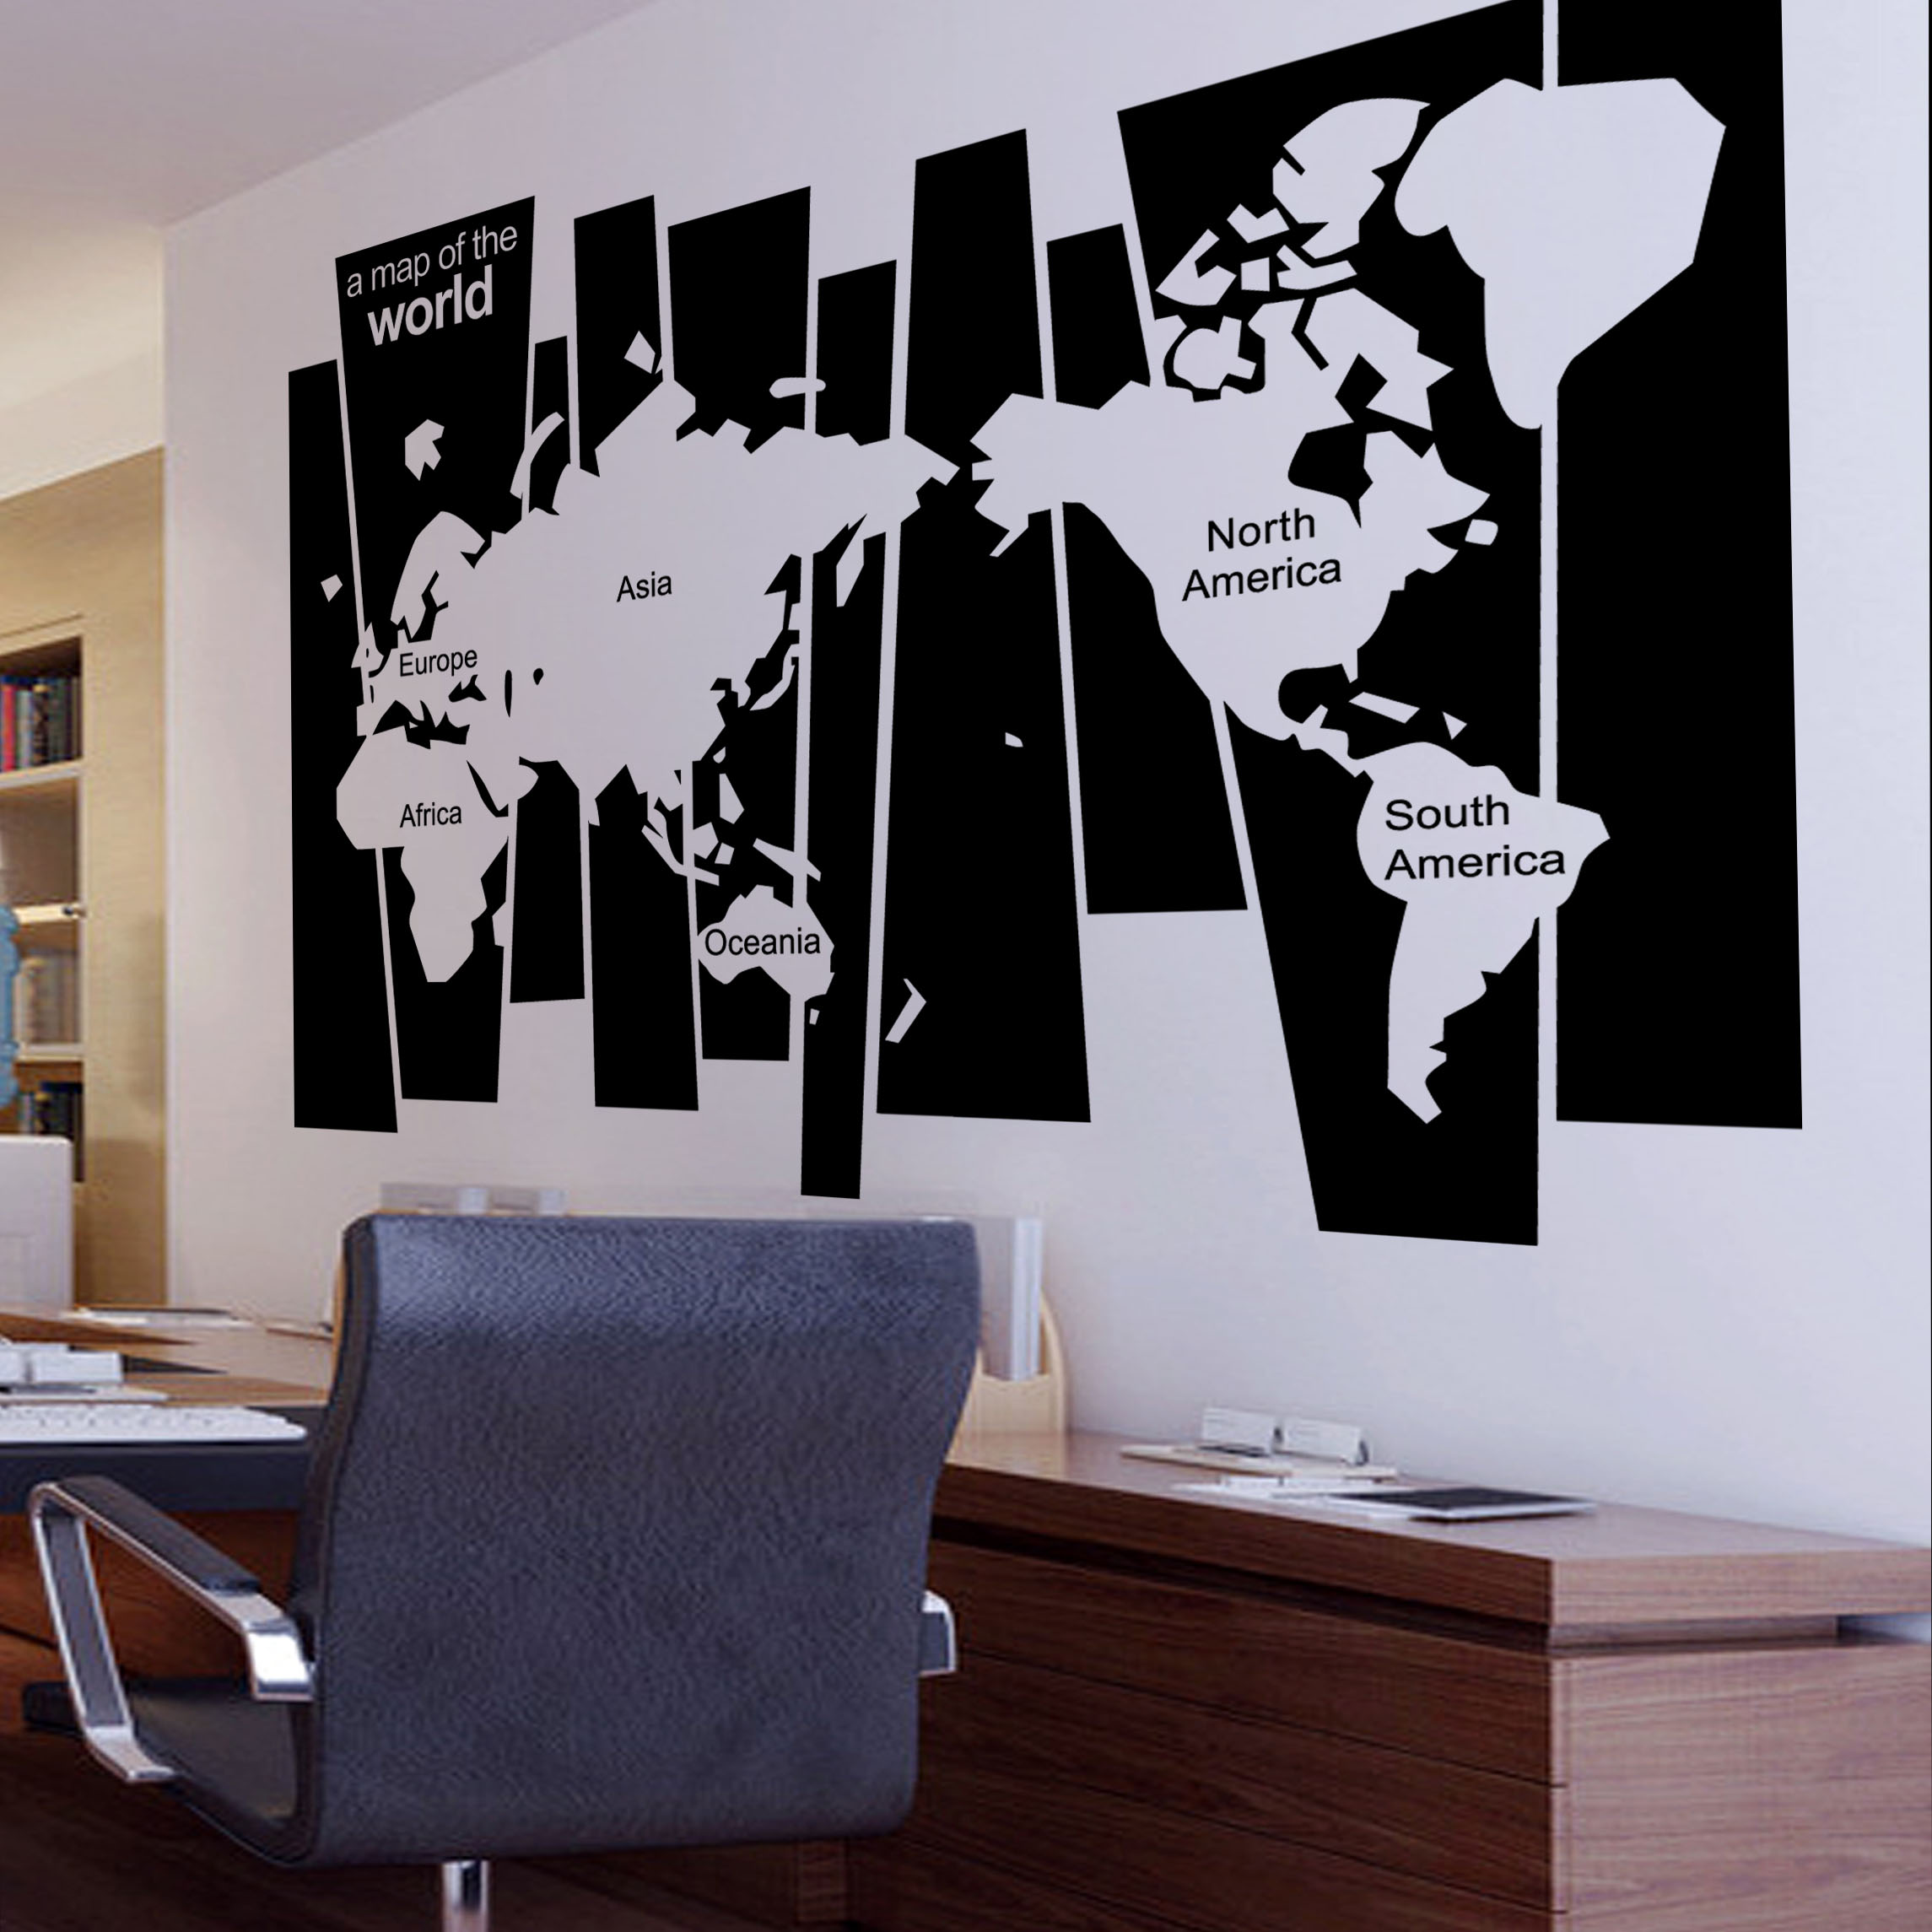 2015 new arrival world map wall stickers home decoration map of the 2015 new arrival world map wall stickers home decoration map of the world wall decals gumiabroncs Image collections